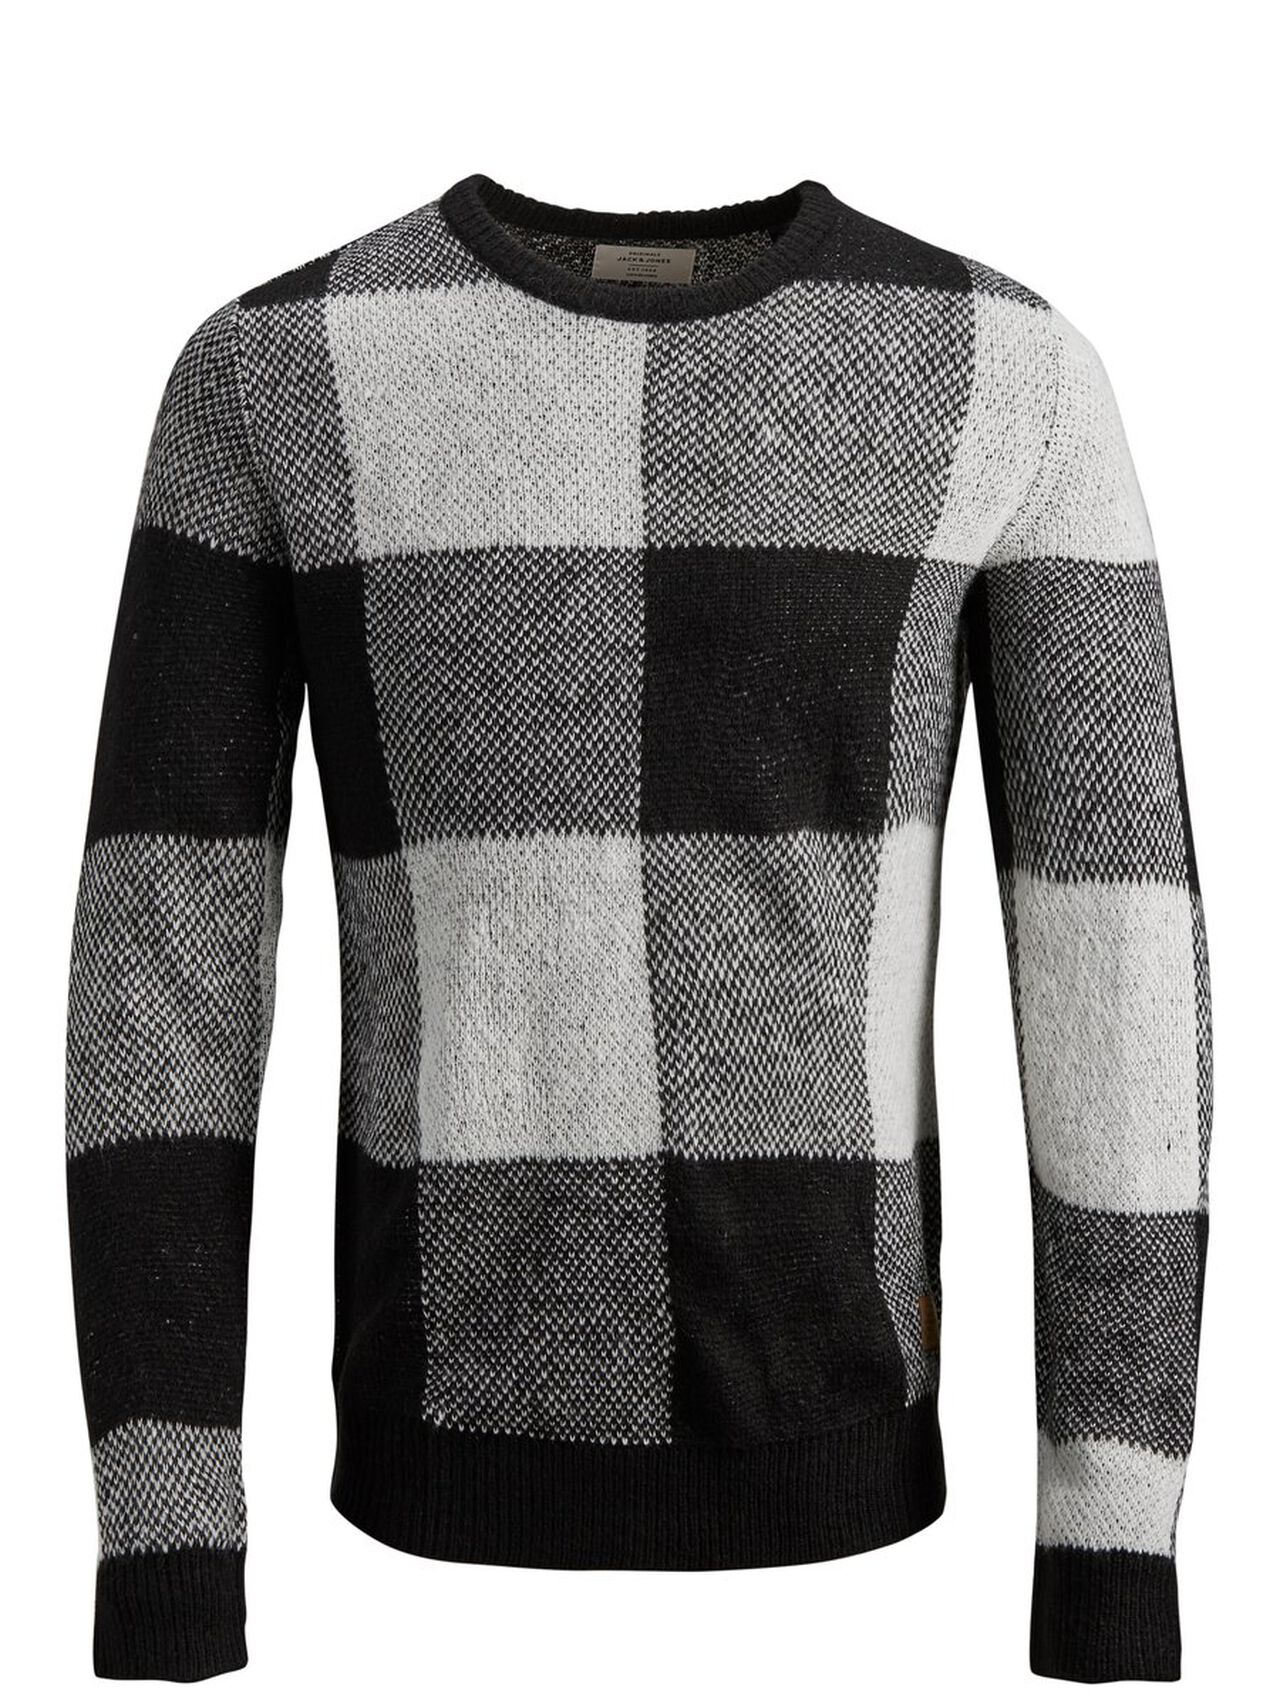 JACK & JONES Patterned Knitted Pullover Men Black